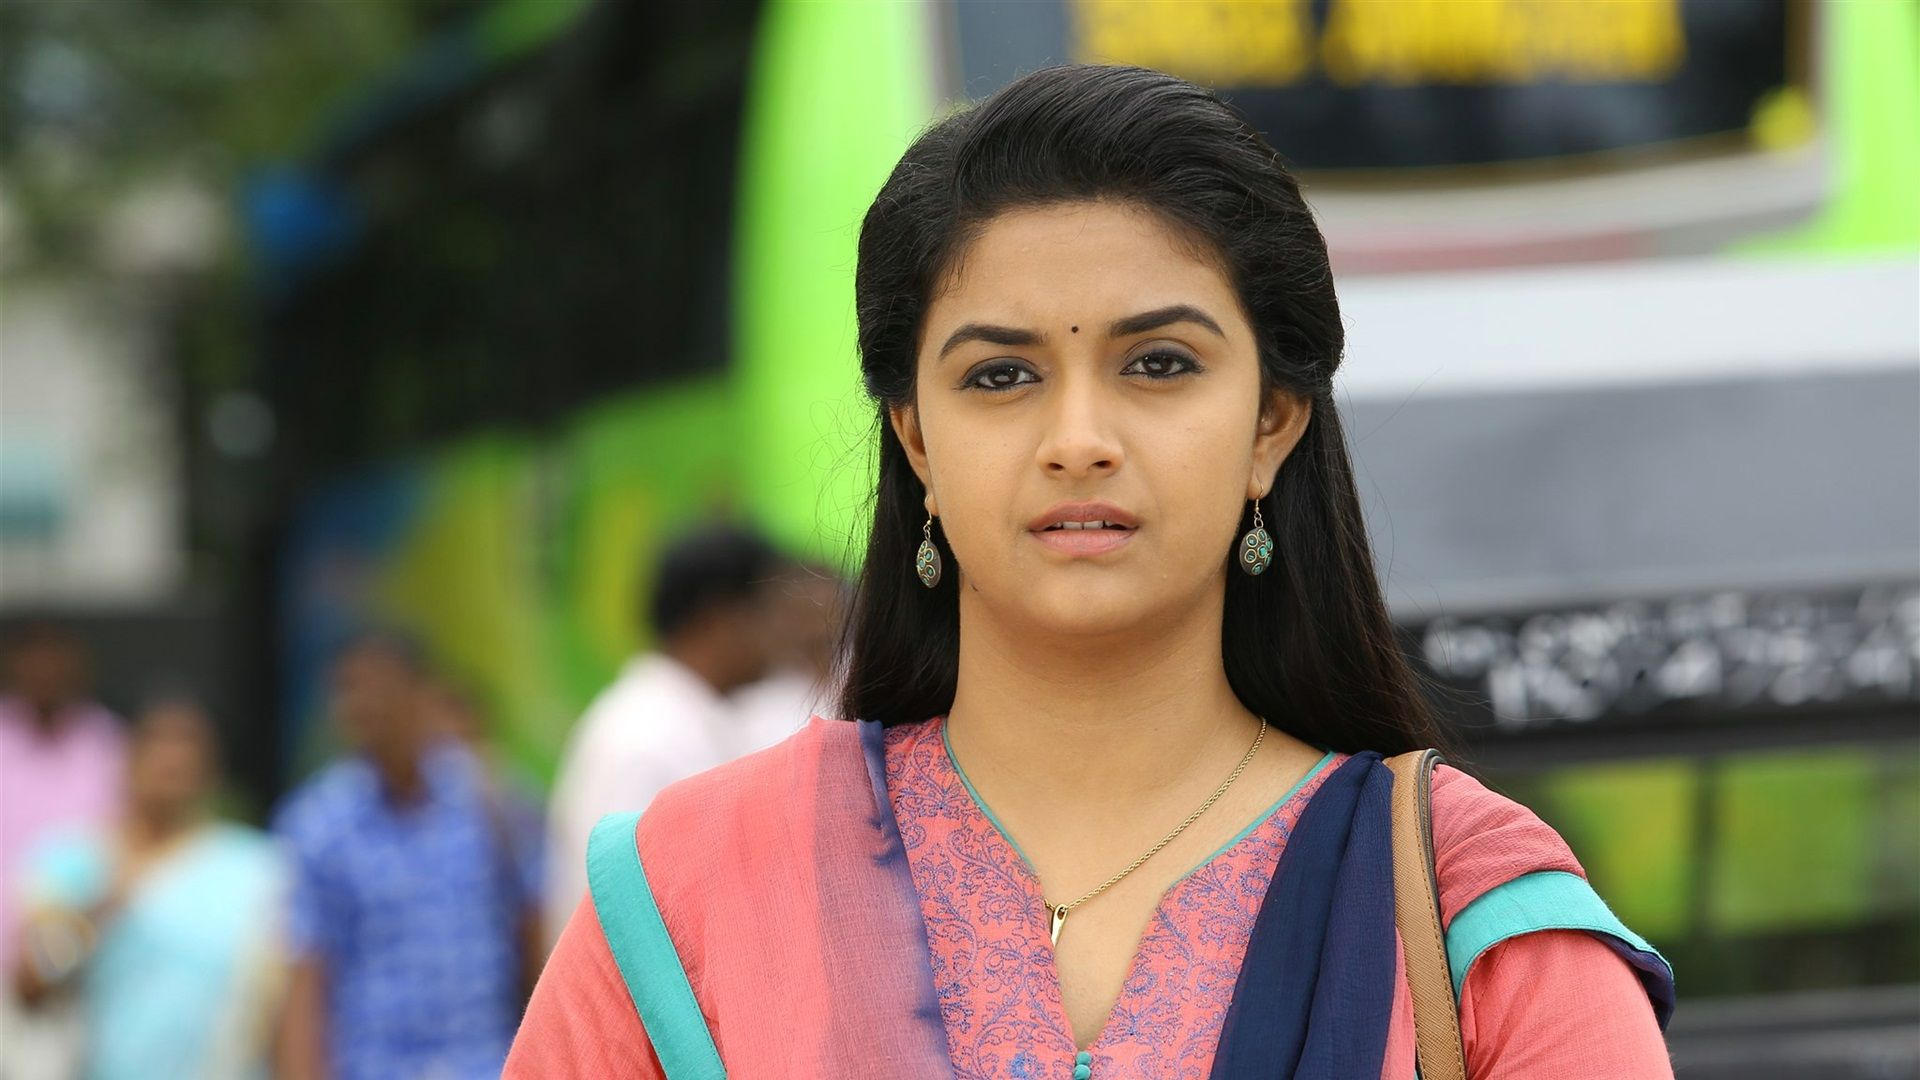 Keerthi Suresh, Background Wallpaper HD